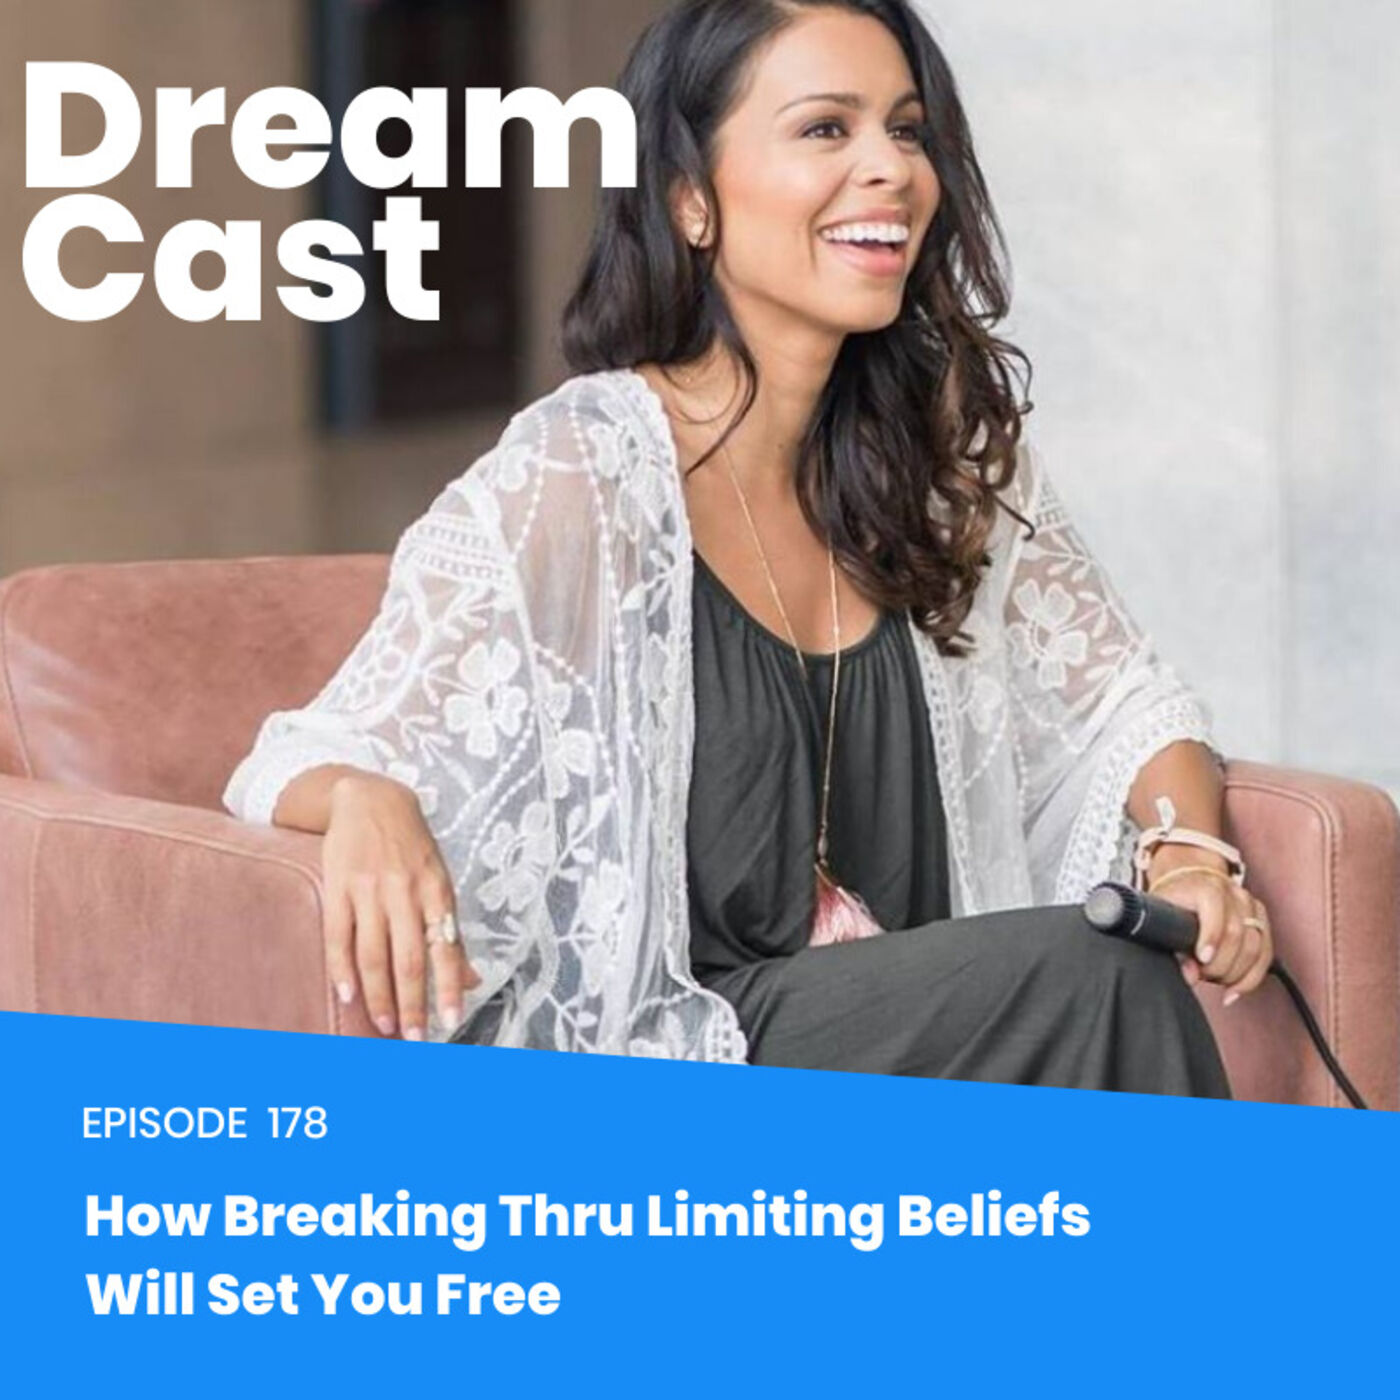 Episode 178 - How Breaking Thru Limiting Beliefs Will Set You Free